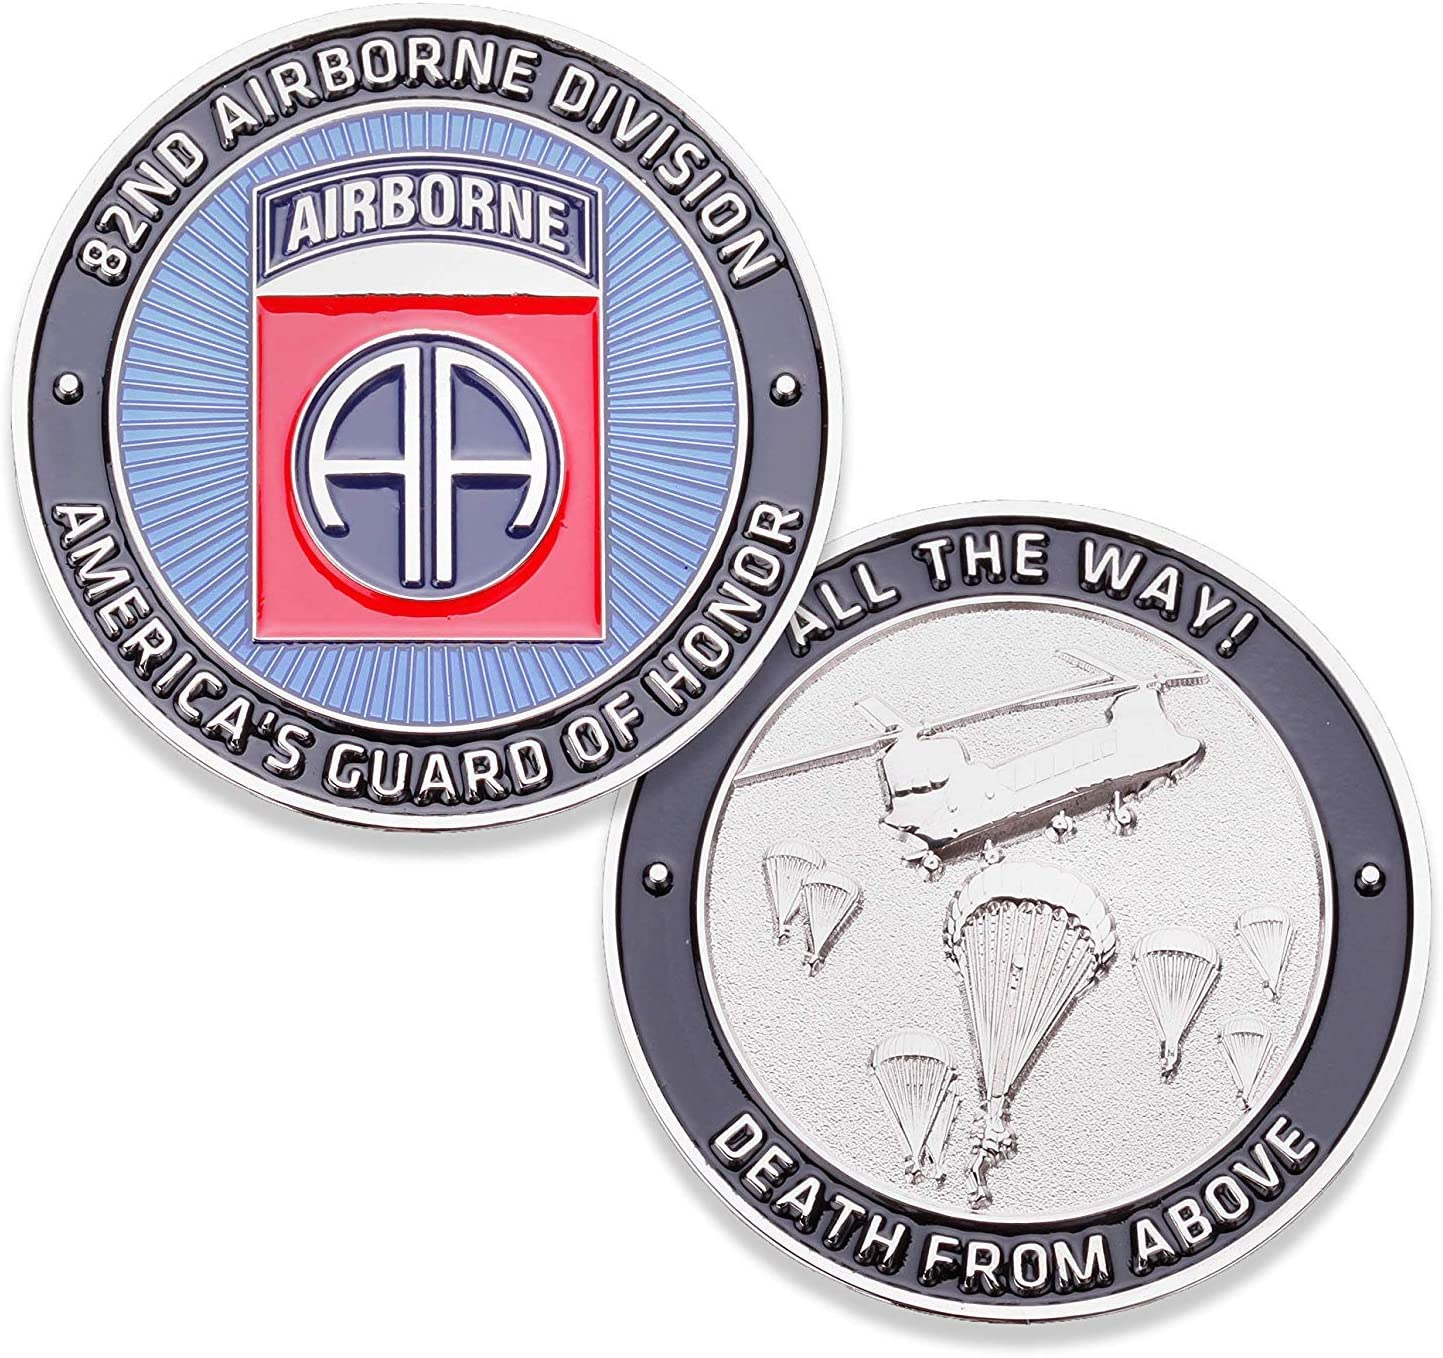 82nd U.S. Army Airborne Challenge Coin! Amazing Eighty Second US Army Custom Coin, 82nd Airborne Military Challenge Coin! Designed by Military Veterans! Officially Licensed Product!